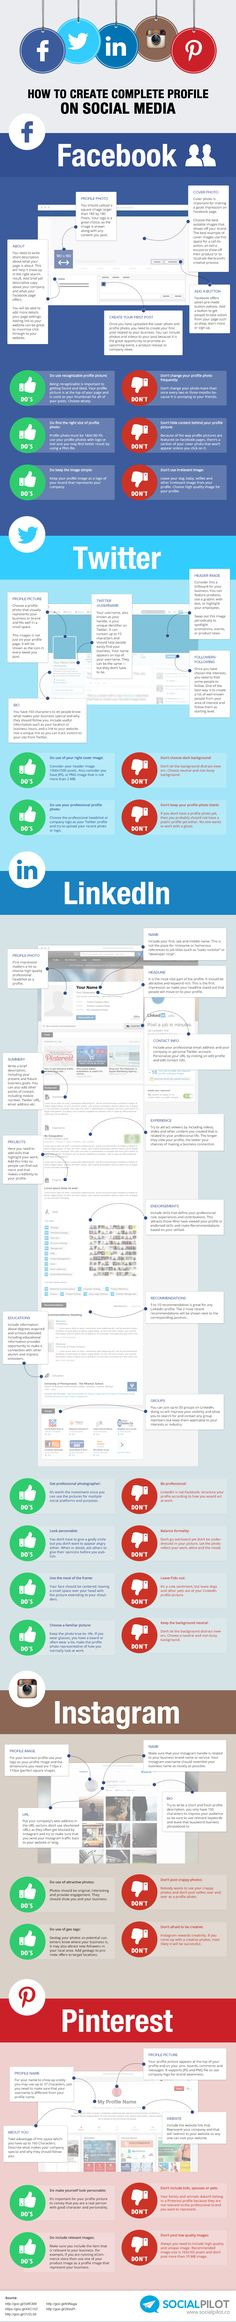 How To Create Complete Profile On Social Media - #Infographic